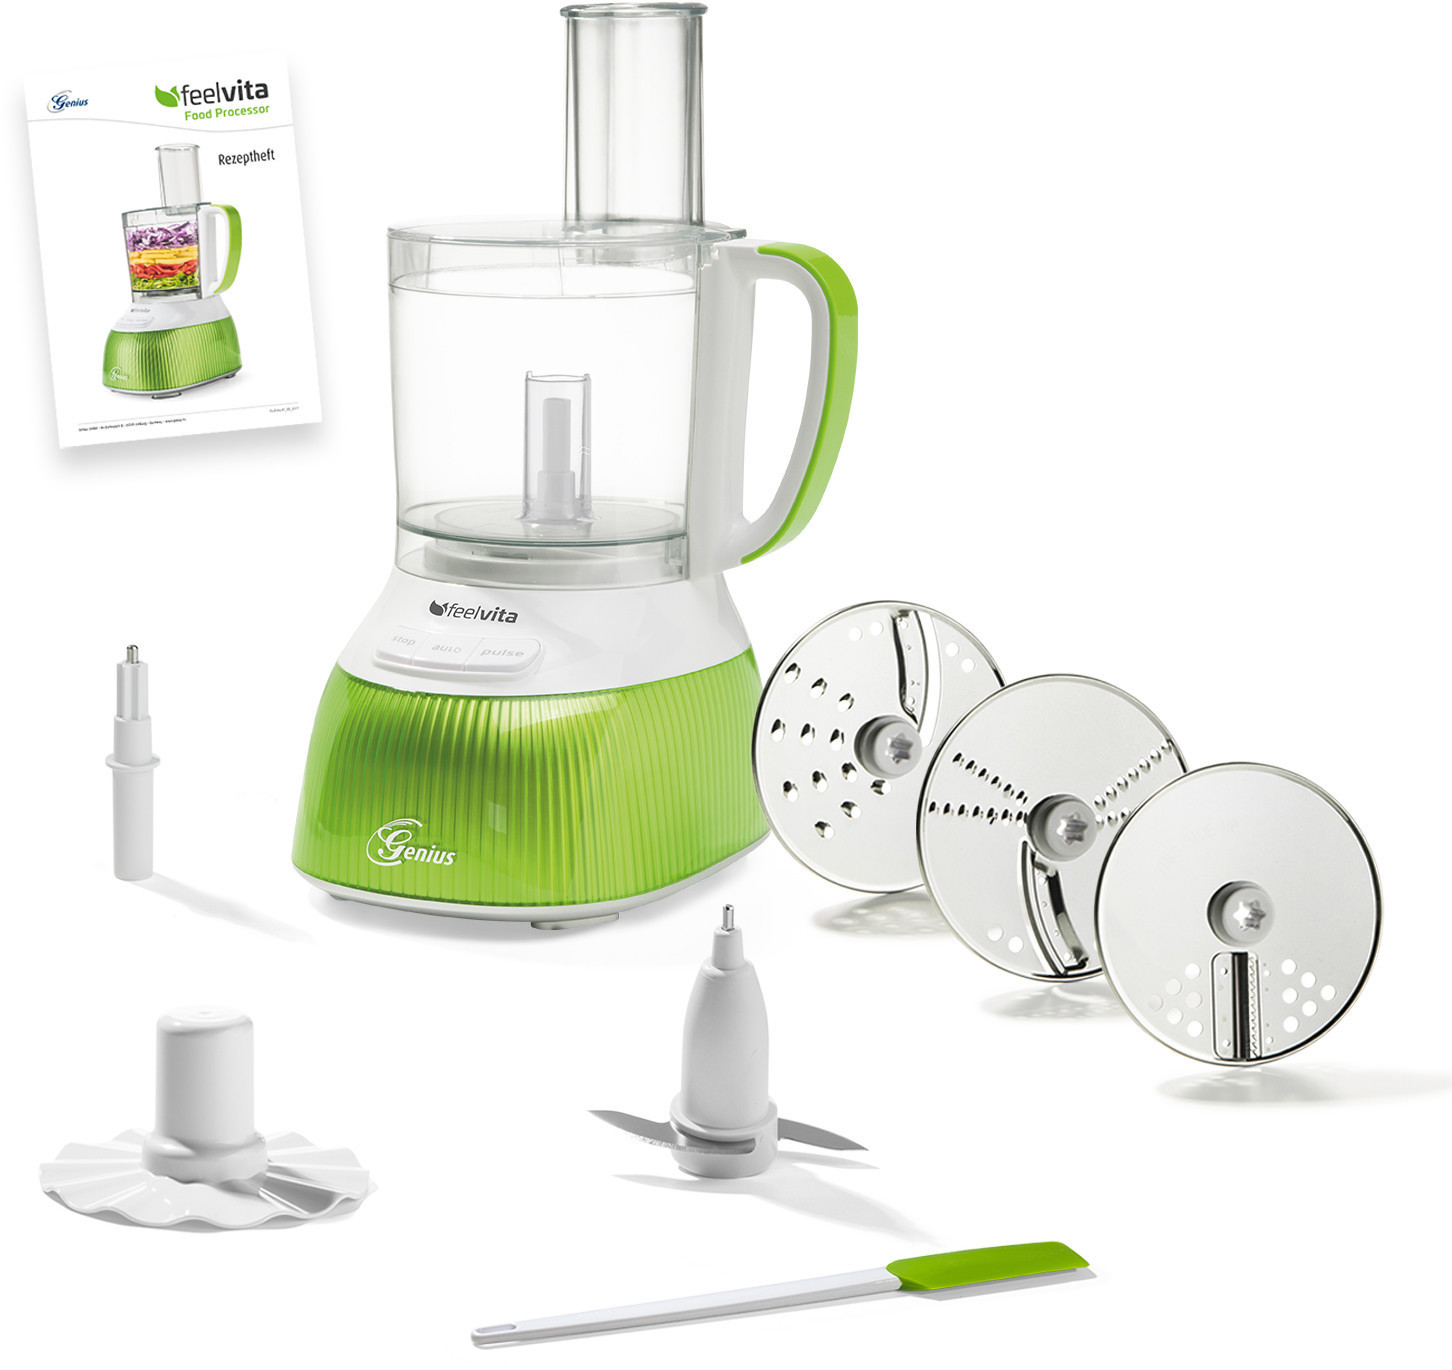 Genius Feelvita Food Processor A80891